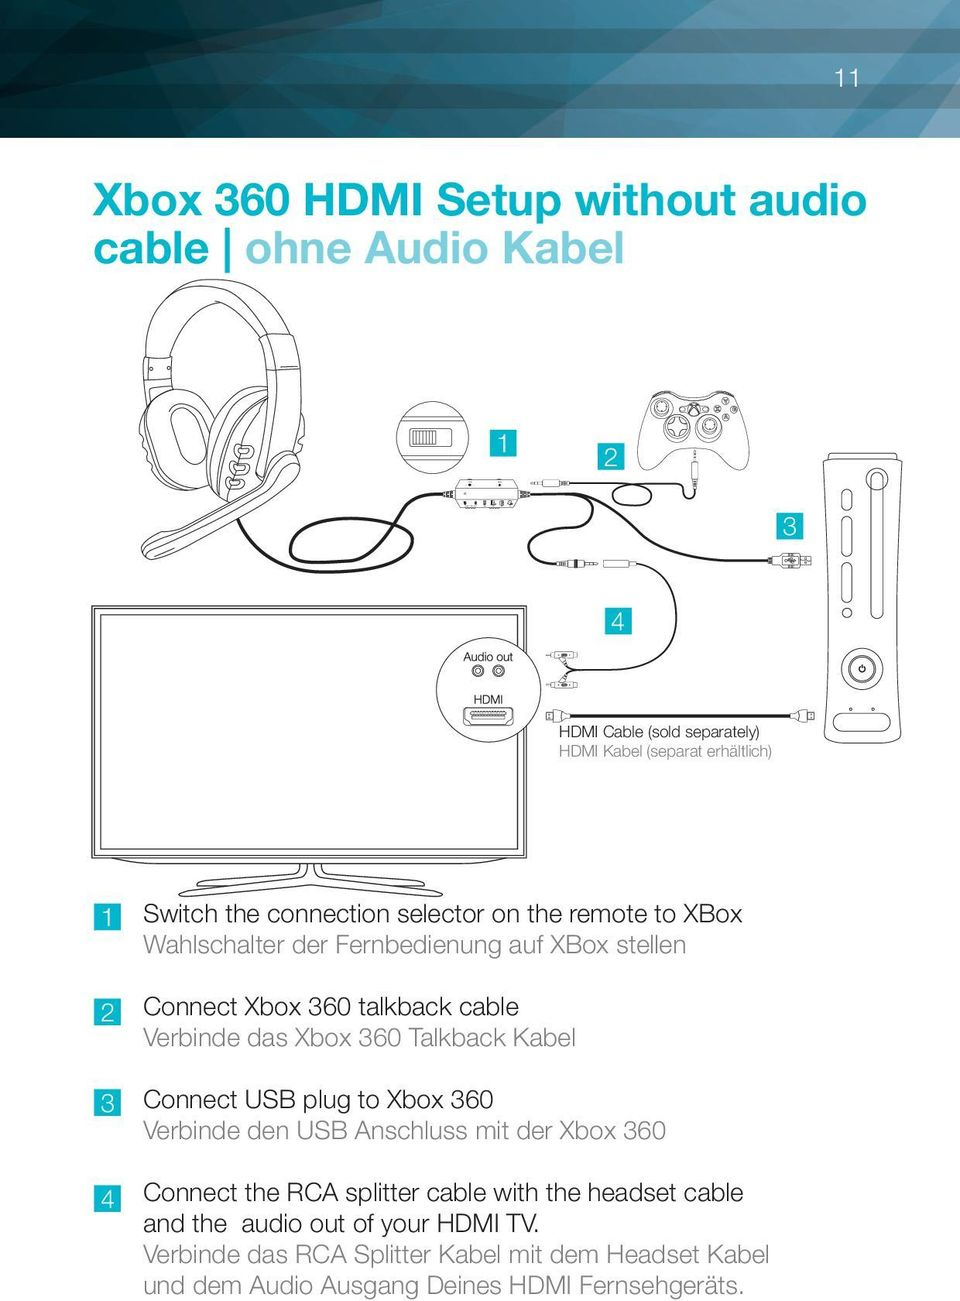 Verbinde das Xbox 60 Talkback Kabel Connect USB plug to Xbox 60 Verbinde den USB Anschluss mit der Xbox 60 Connect the RCA splitter cable with the